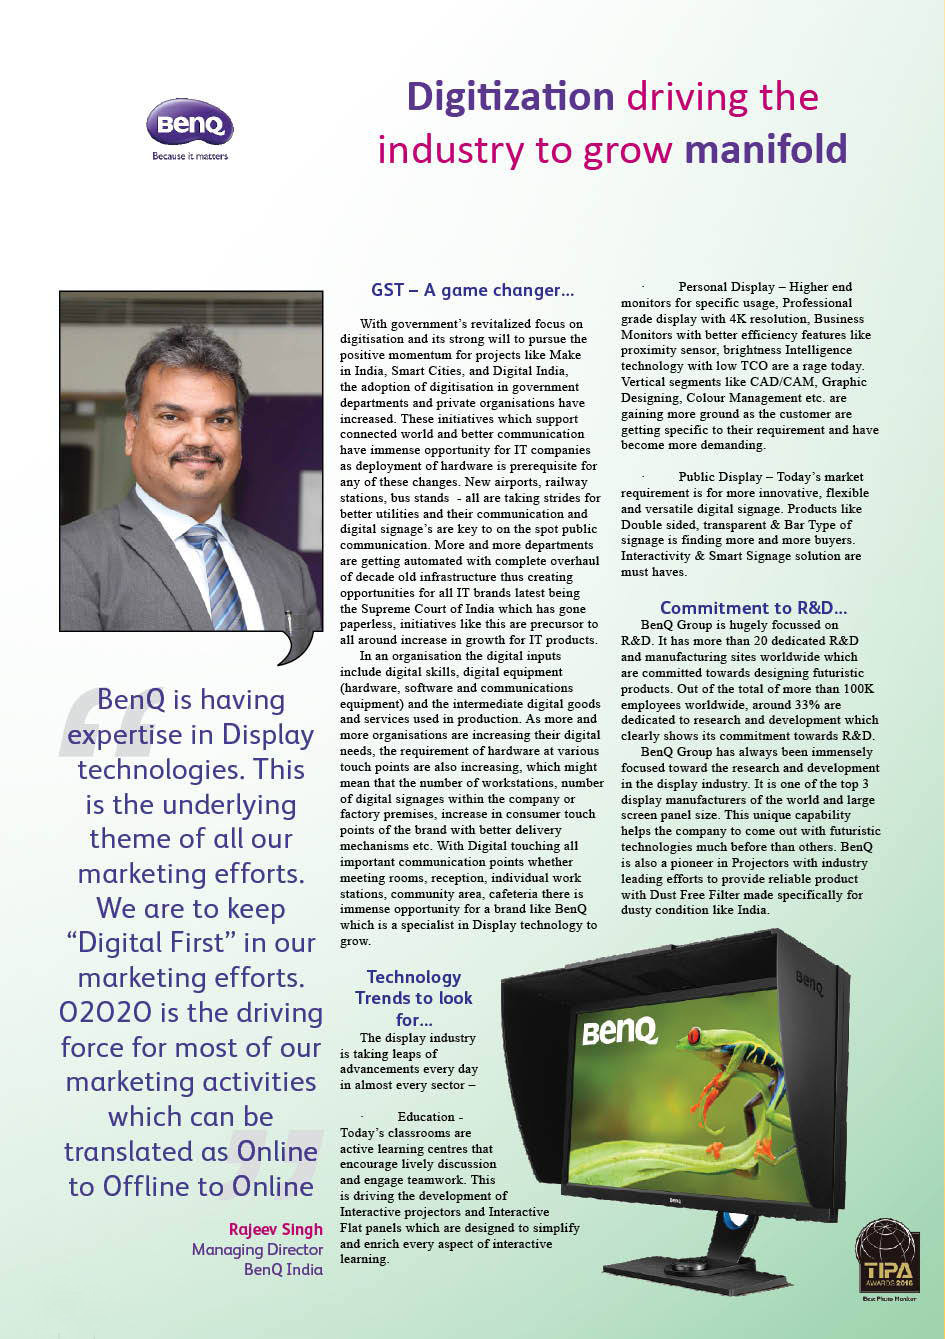 Benq: Digitization driving the industry to grow manifold